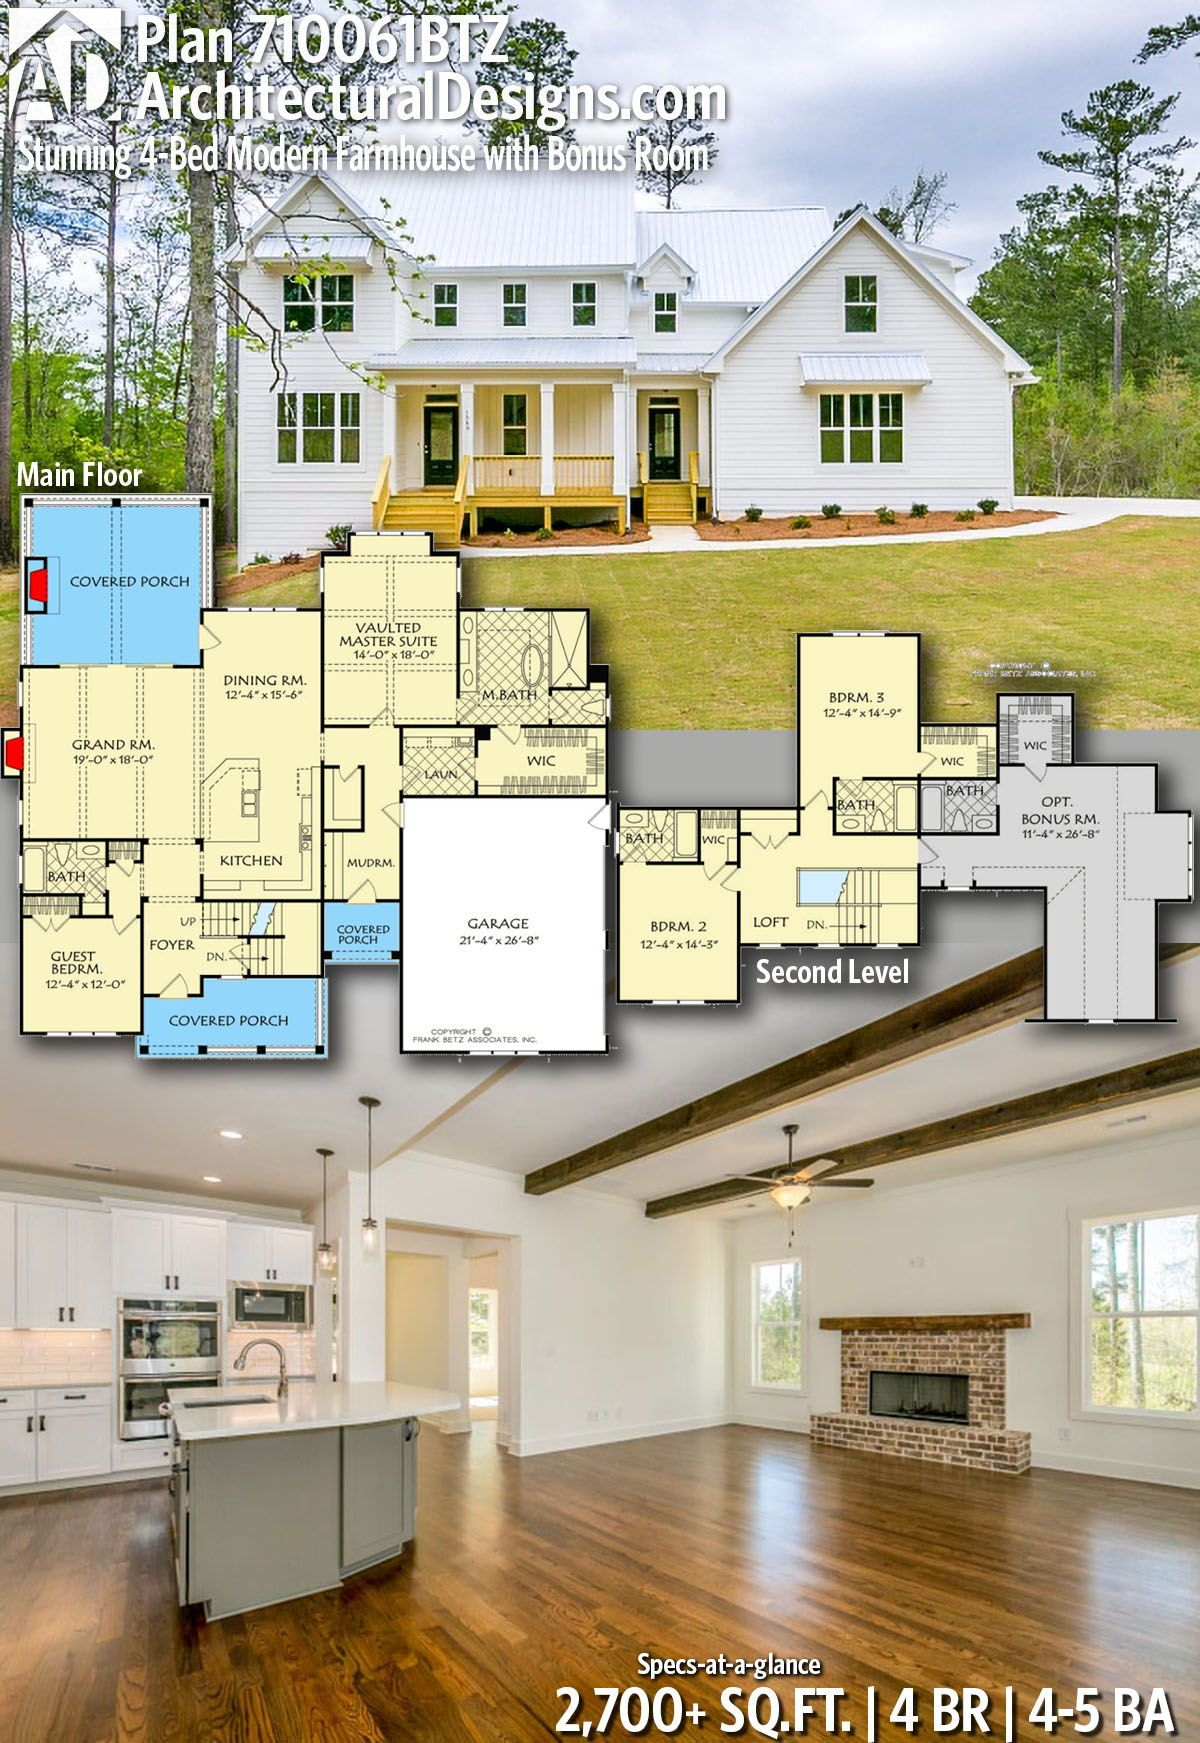 Plan 710061btz Stunning 4 Bed Modern Farmhouse With Bonus Room House Plans Farmhouse Dream House Plans Farmhouse Plans